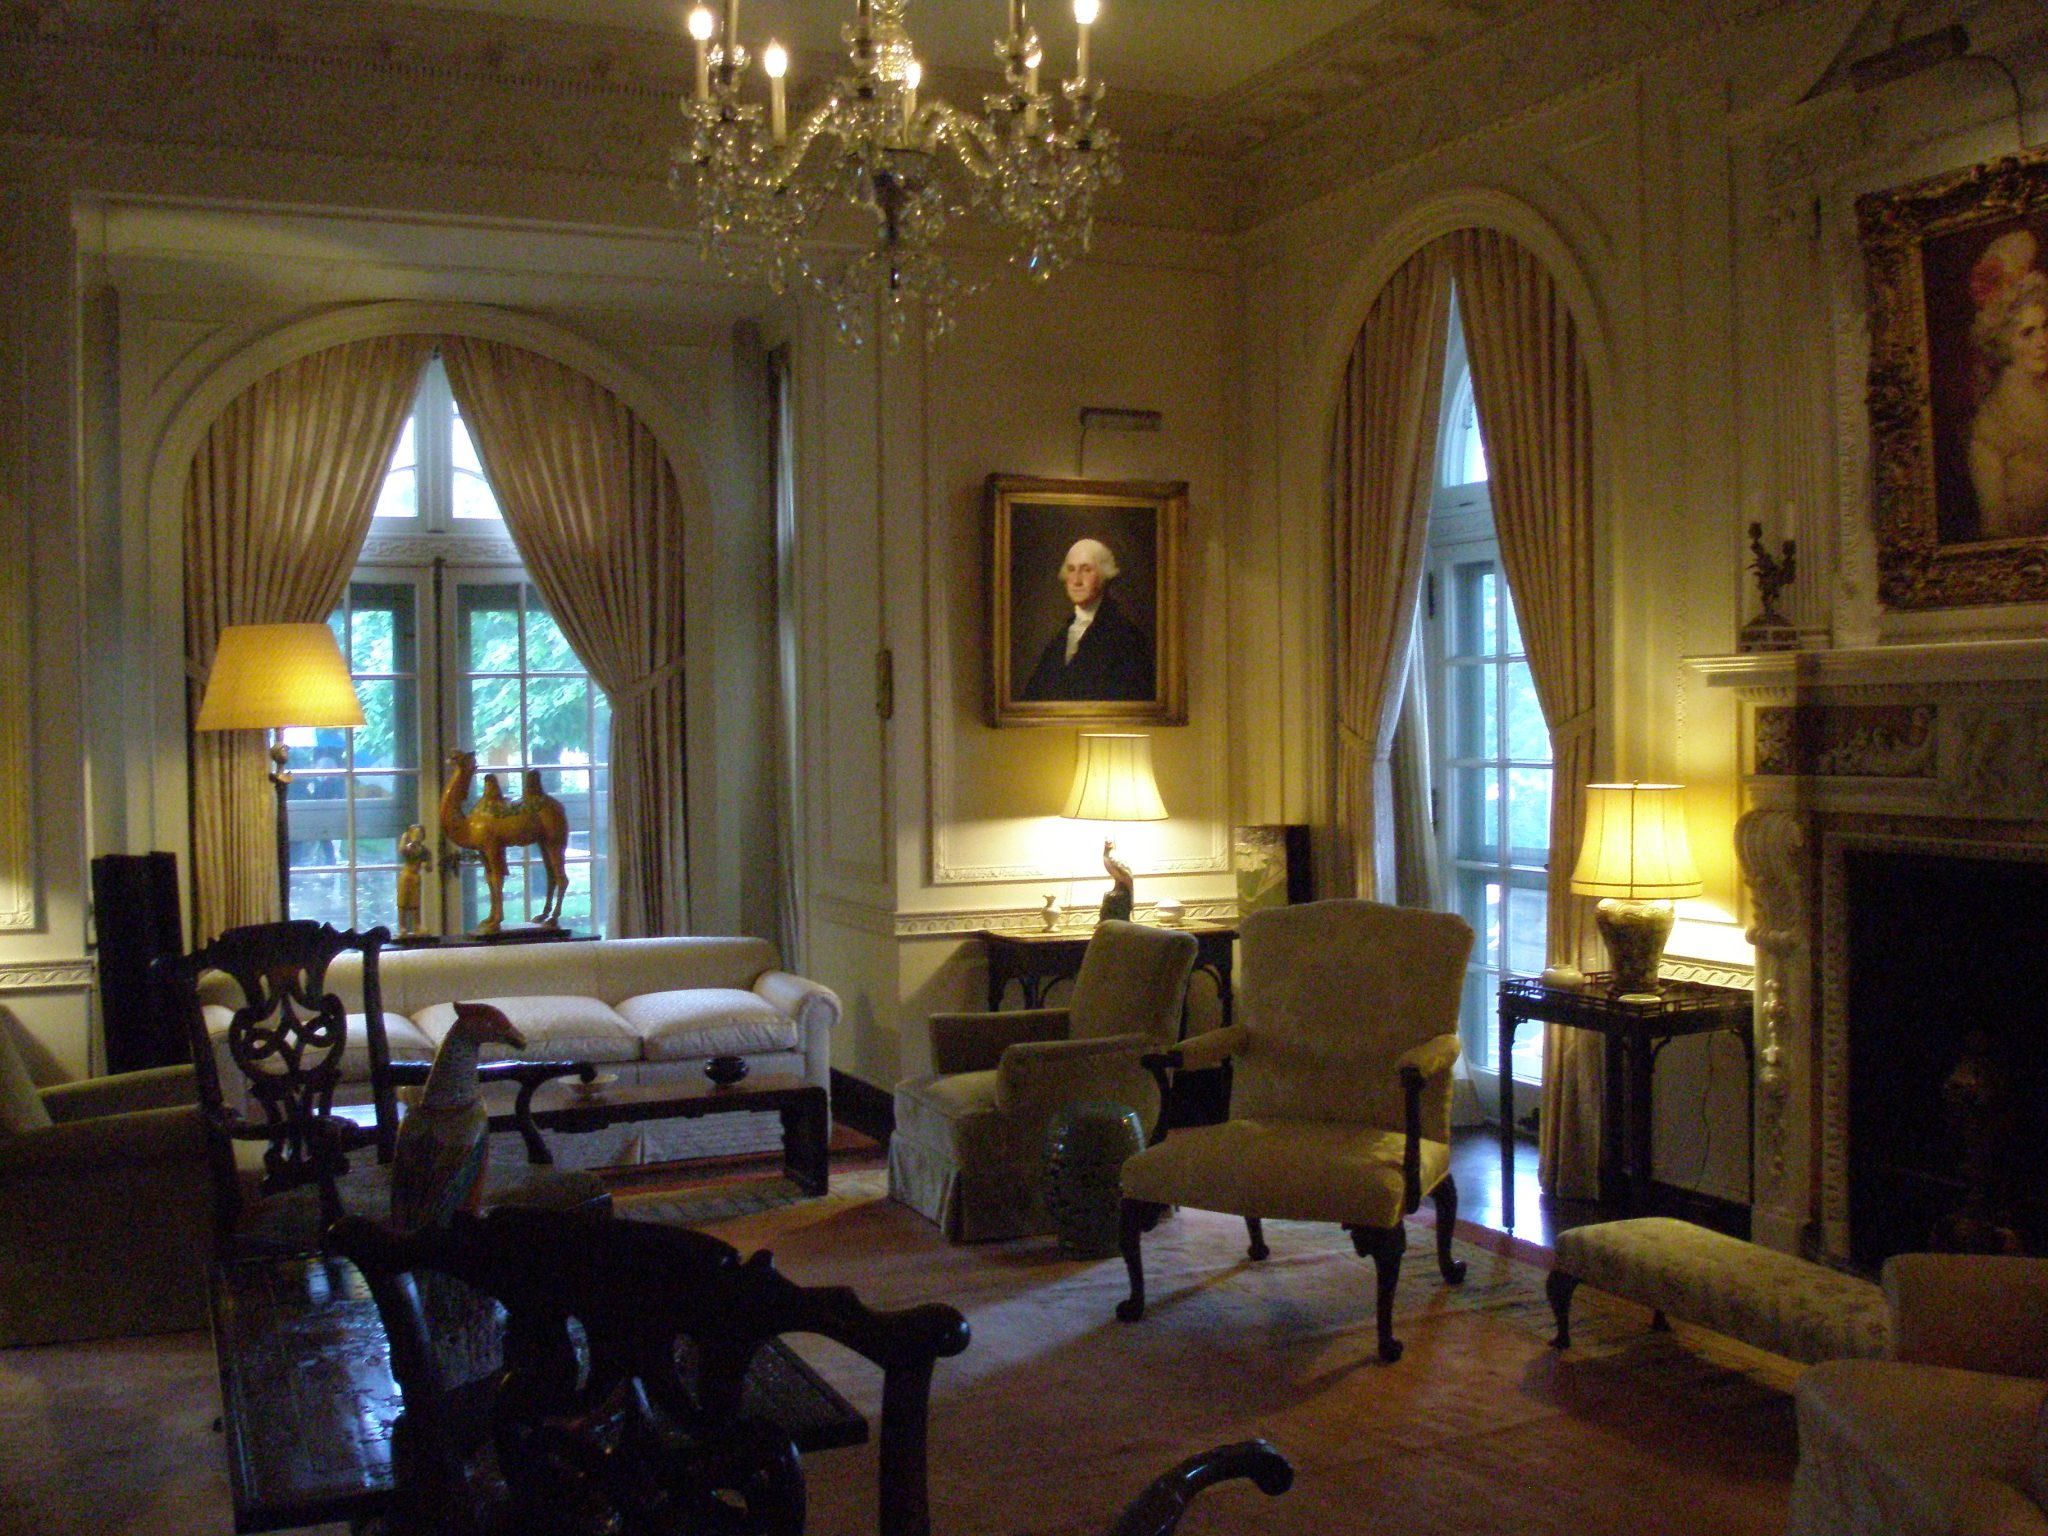 Library. Portrait of George Washington by Gilbert Stuart. I think the camel by the french doors is fabulous!